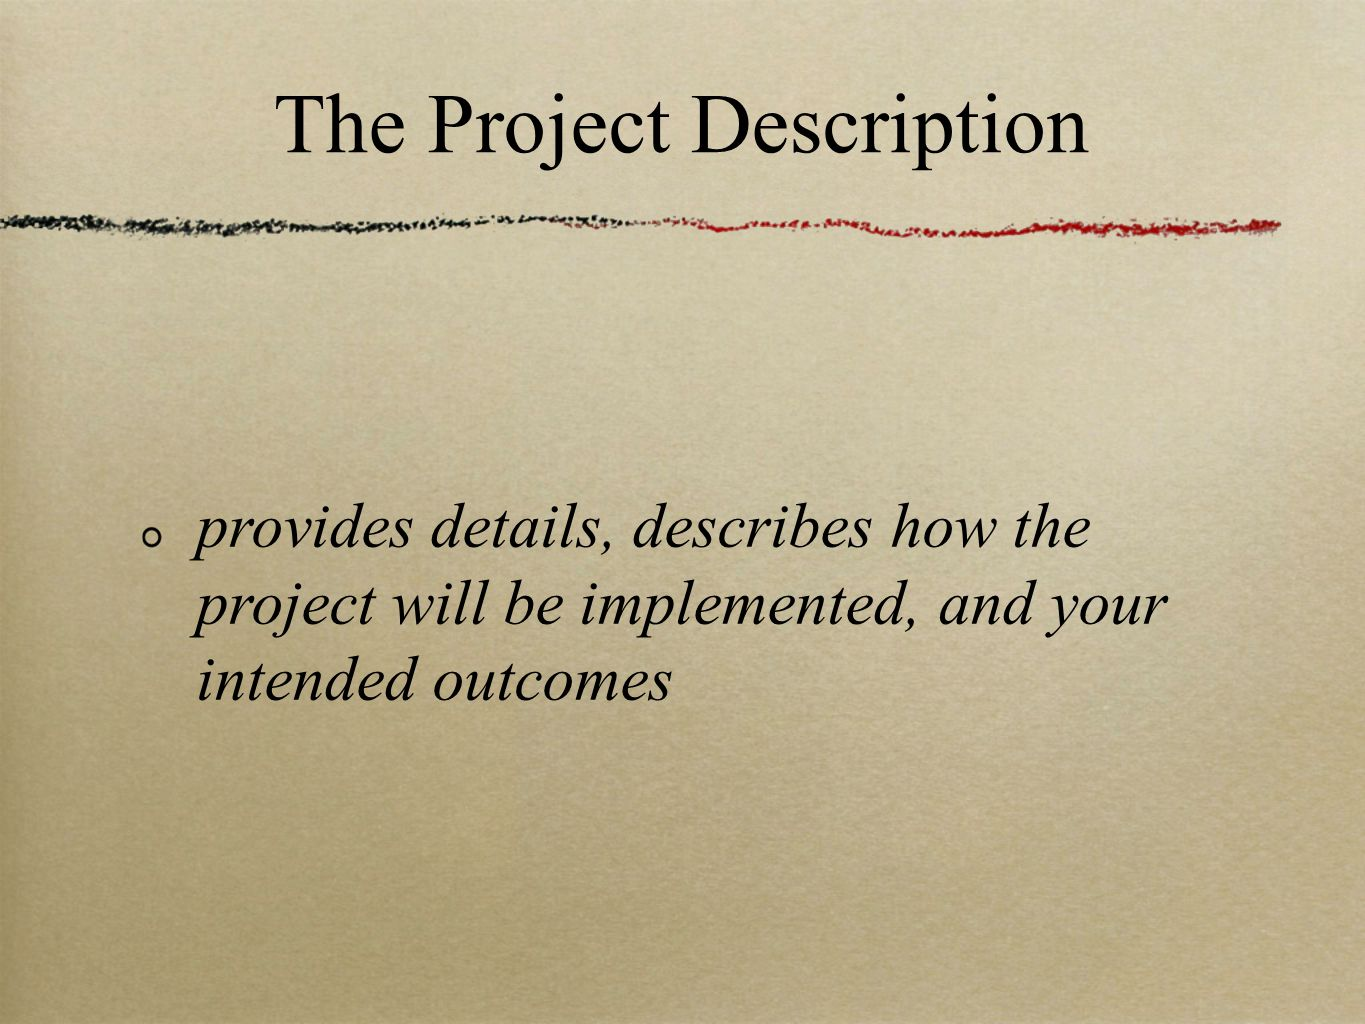 The Project Description provides details, describes how the project will be implemented, and your intended outcomes